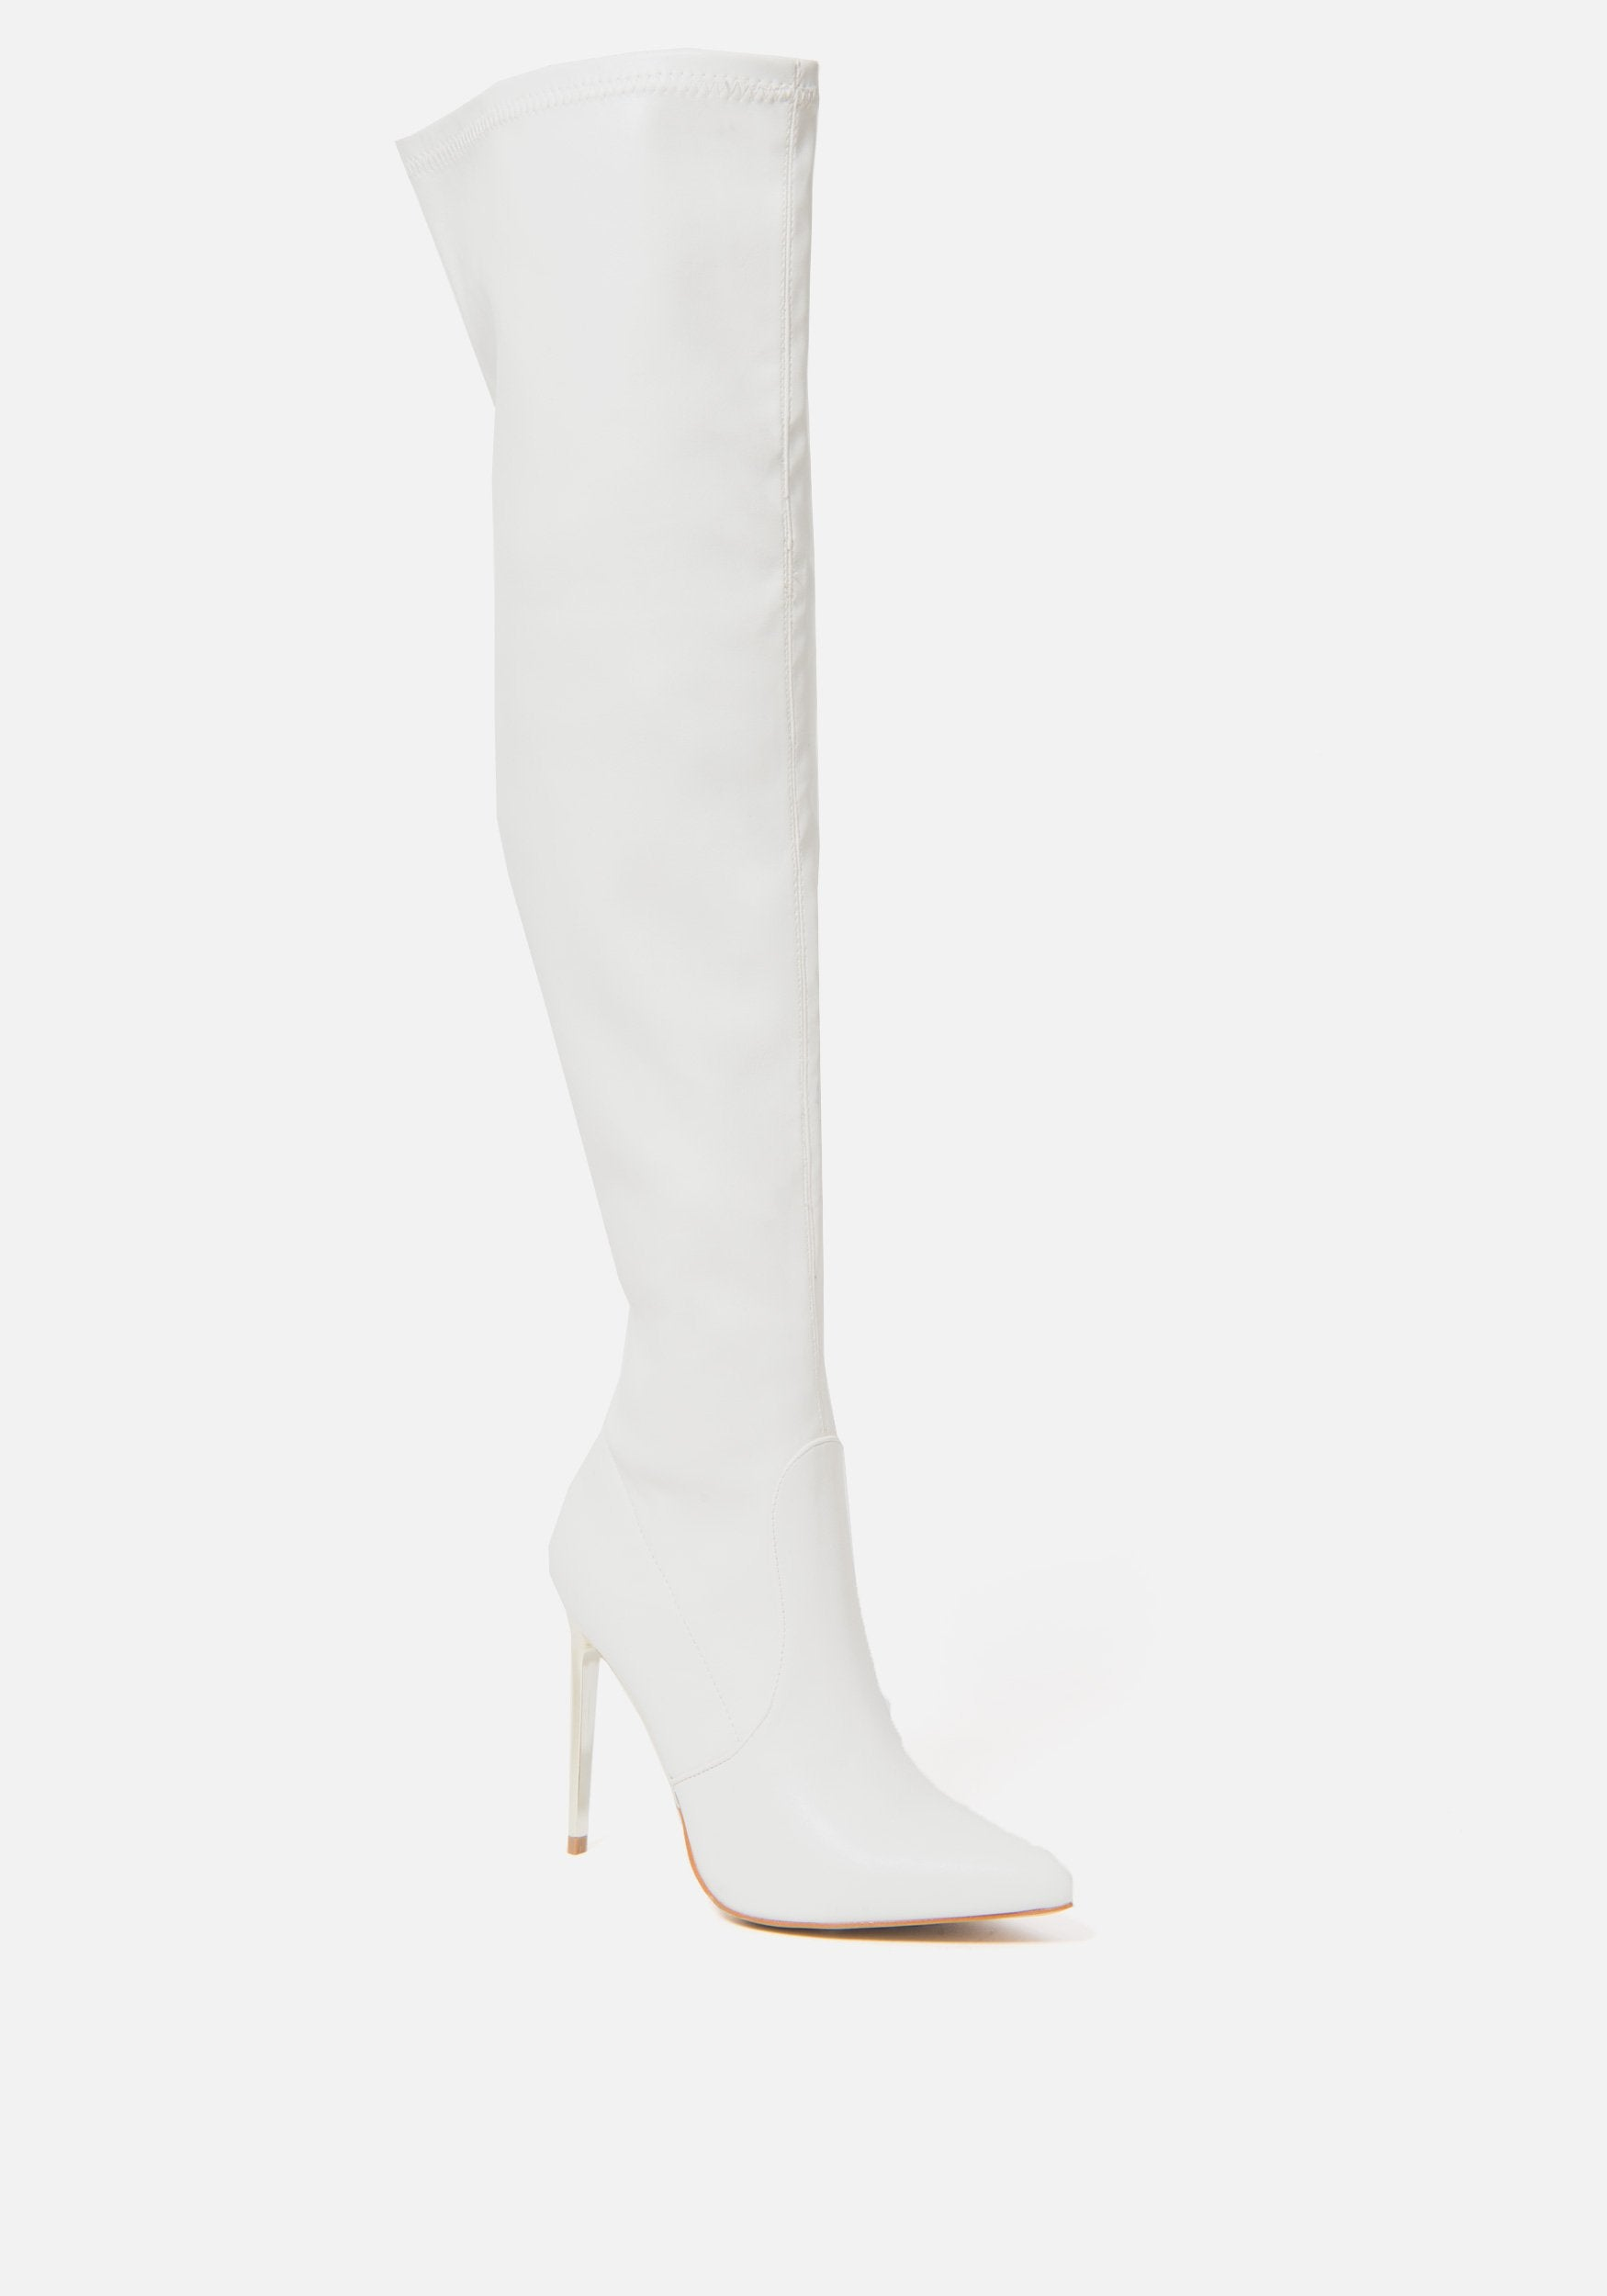 Bebe Women's Valirya Over the Knee Boots, Size 6 in WINTER WHITE Synthetic